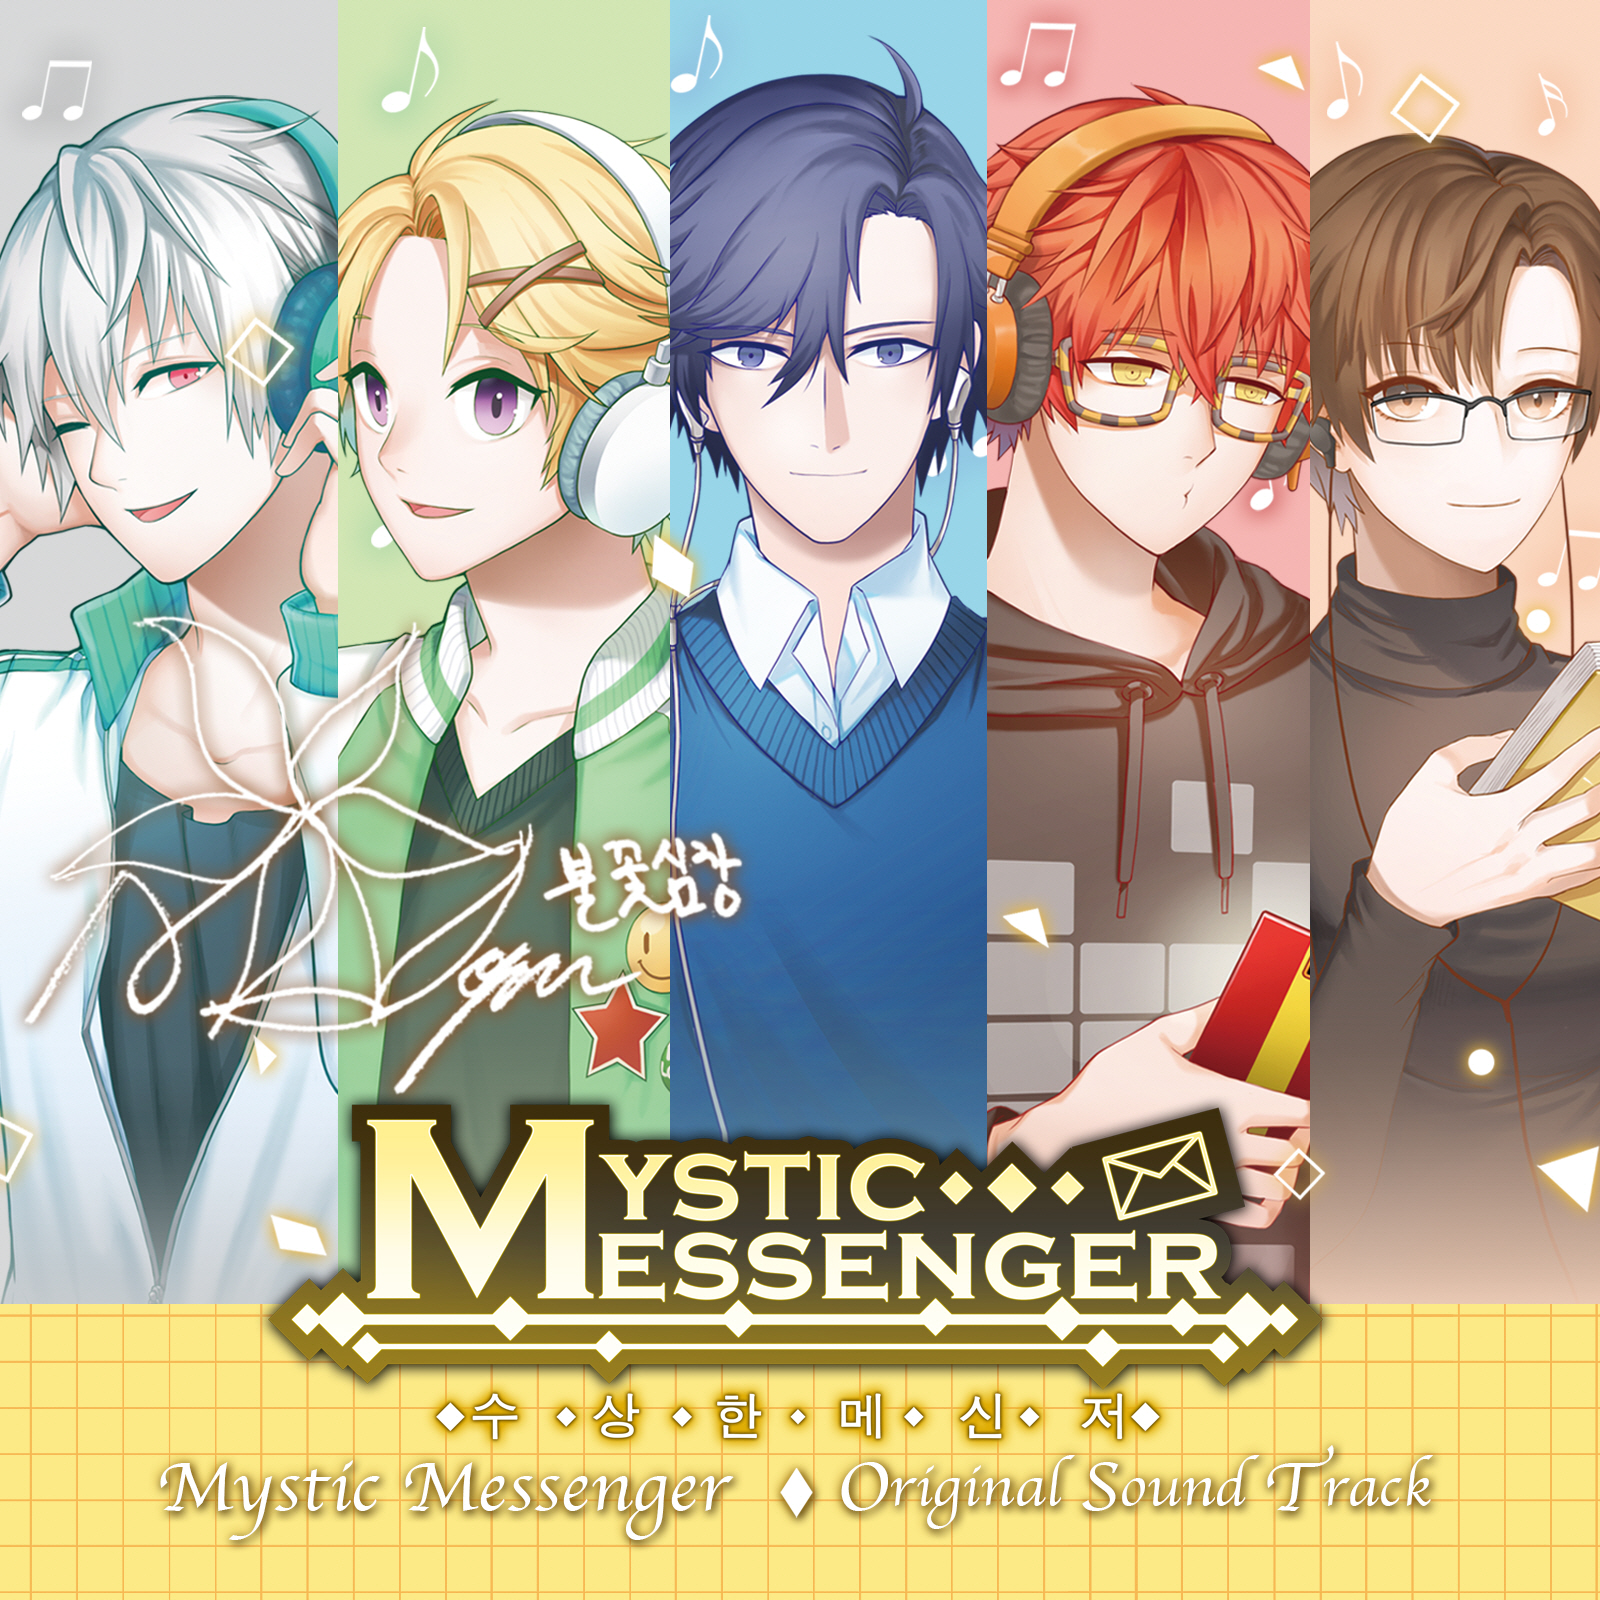 Mysterious Messenger Mystic Messenger Wiki Fandom Powered By Wikia